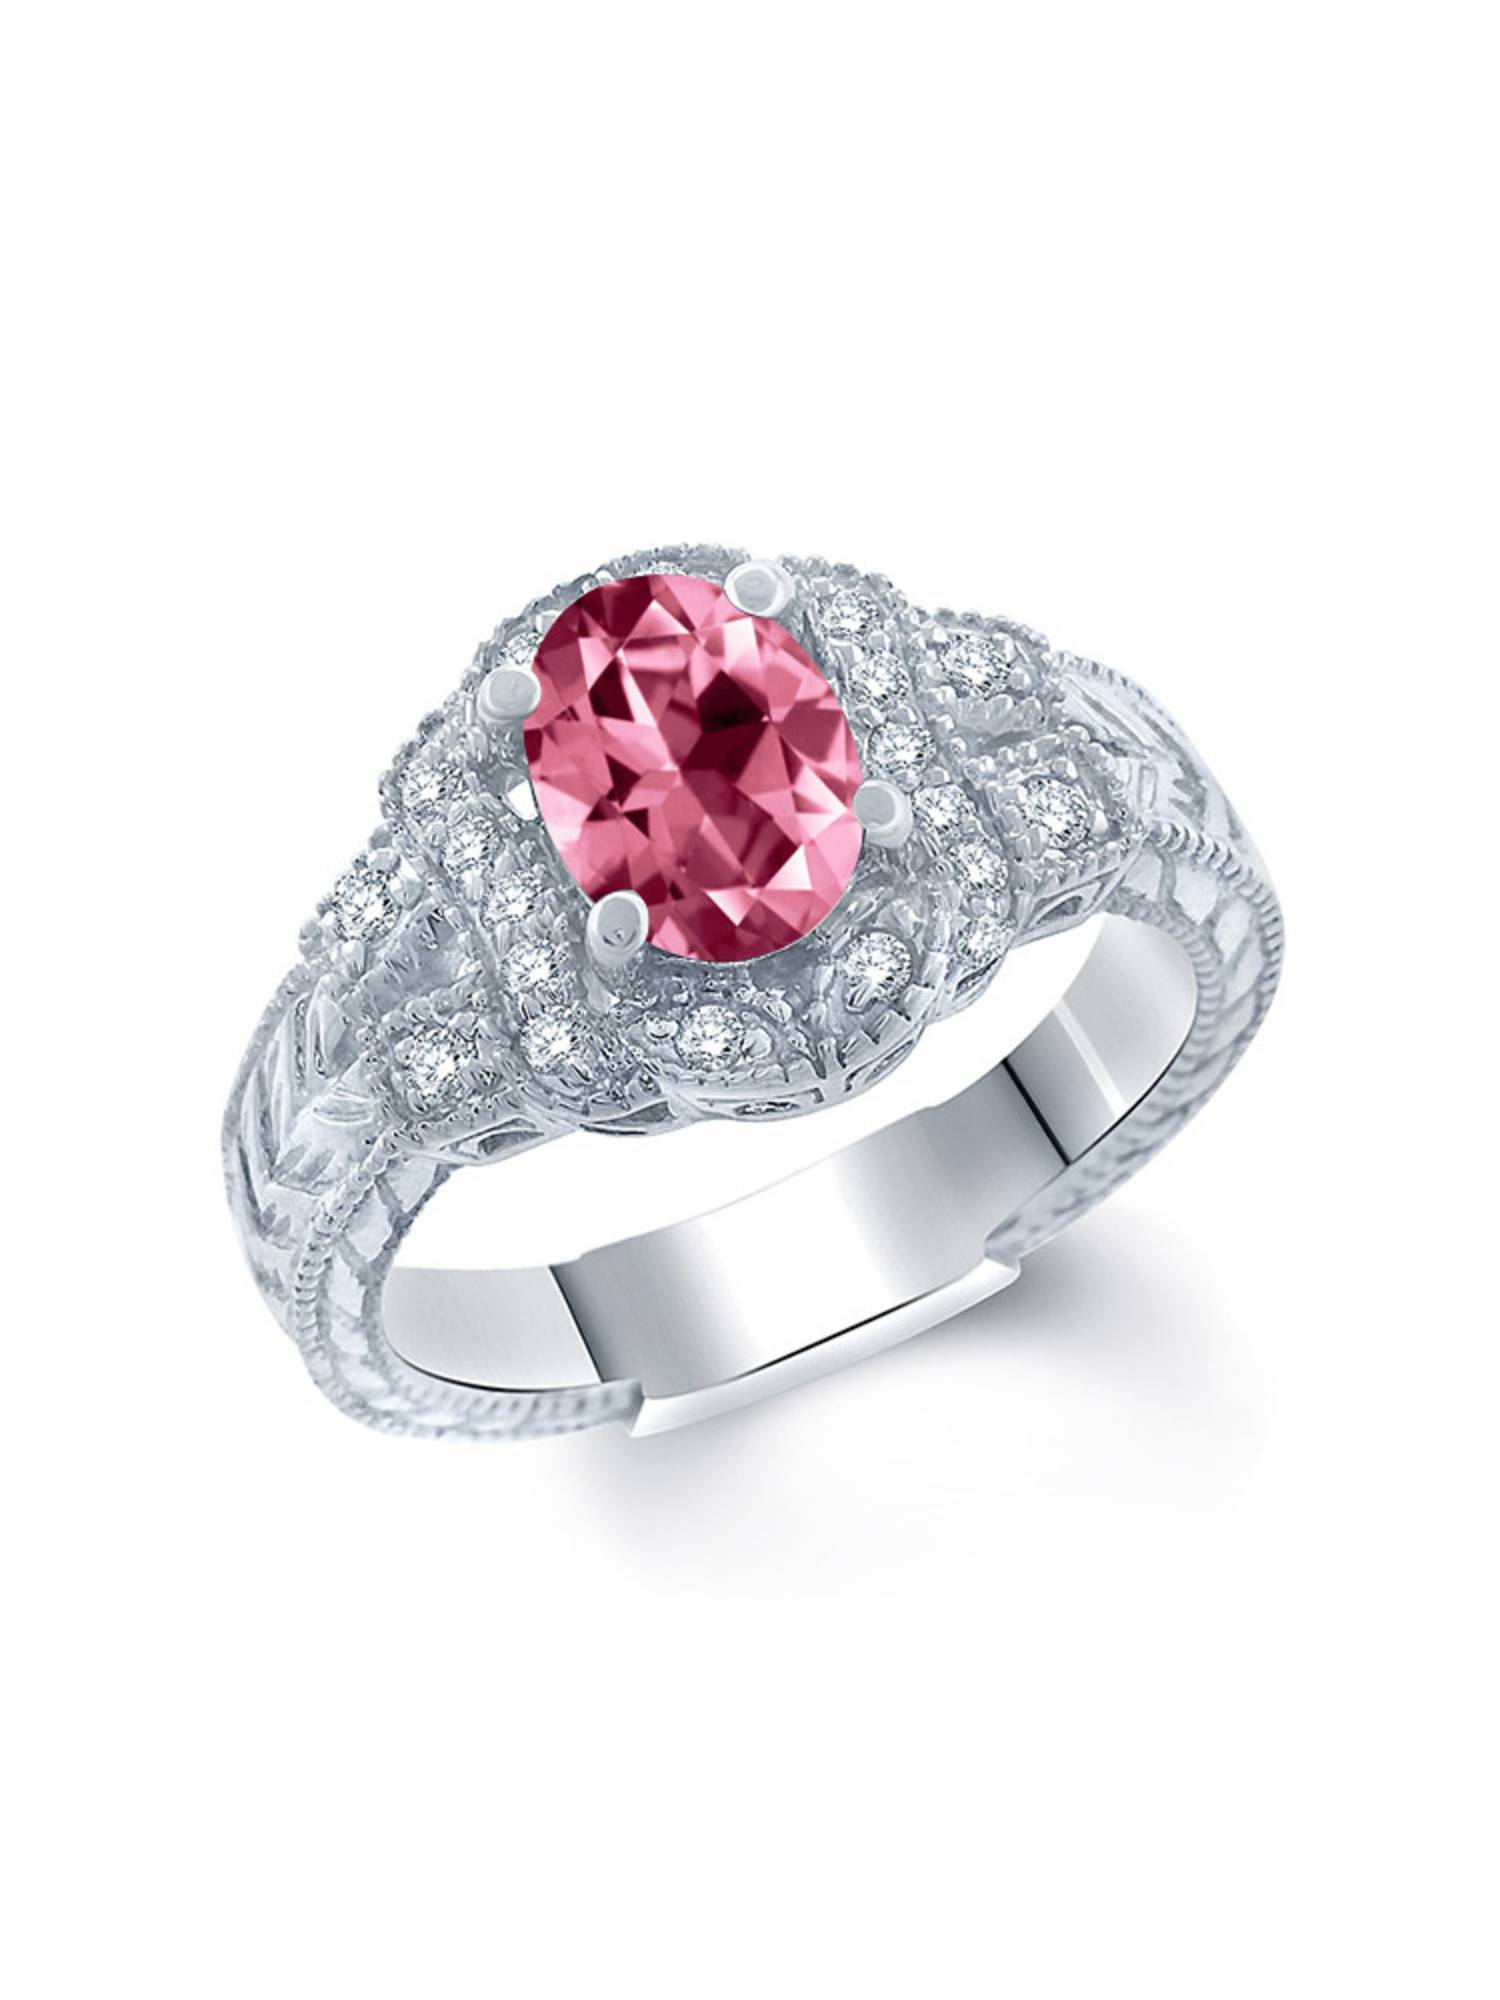 925 Sterling Silver Ring Set with Oval Pink Topaz from Swarovski by